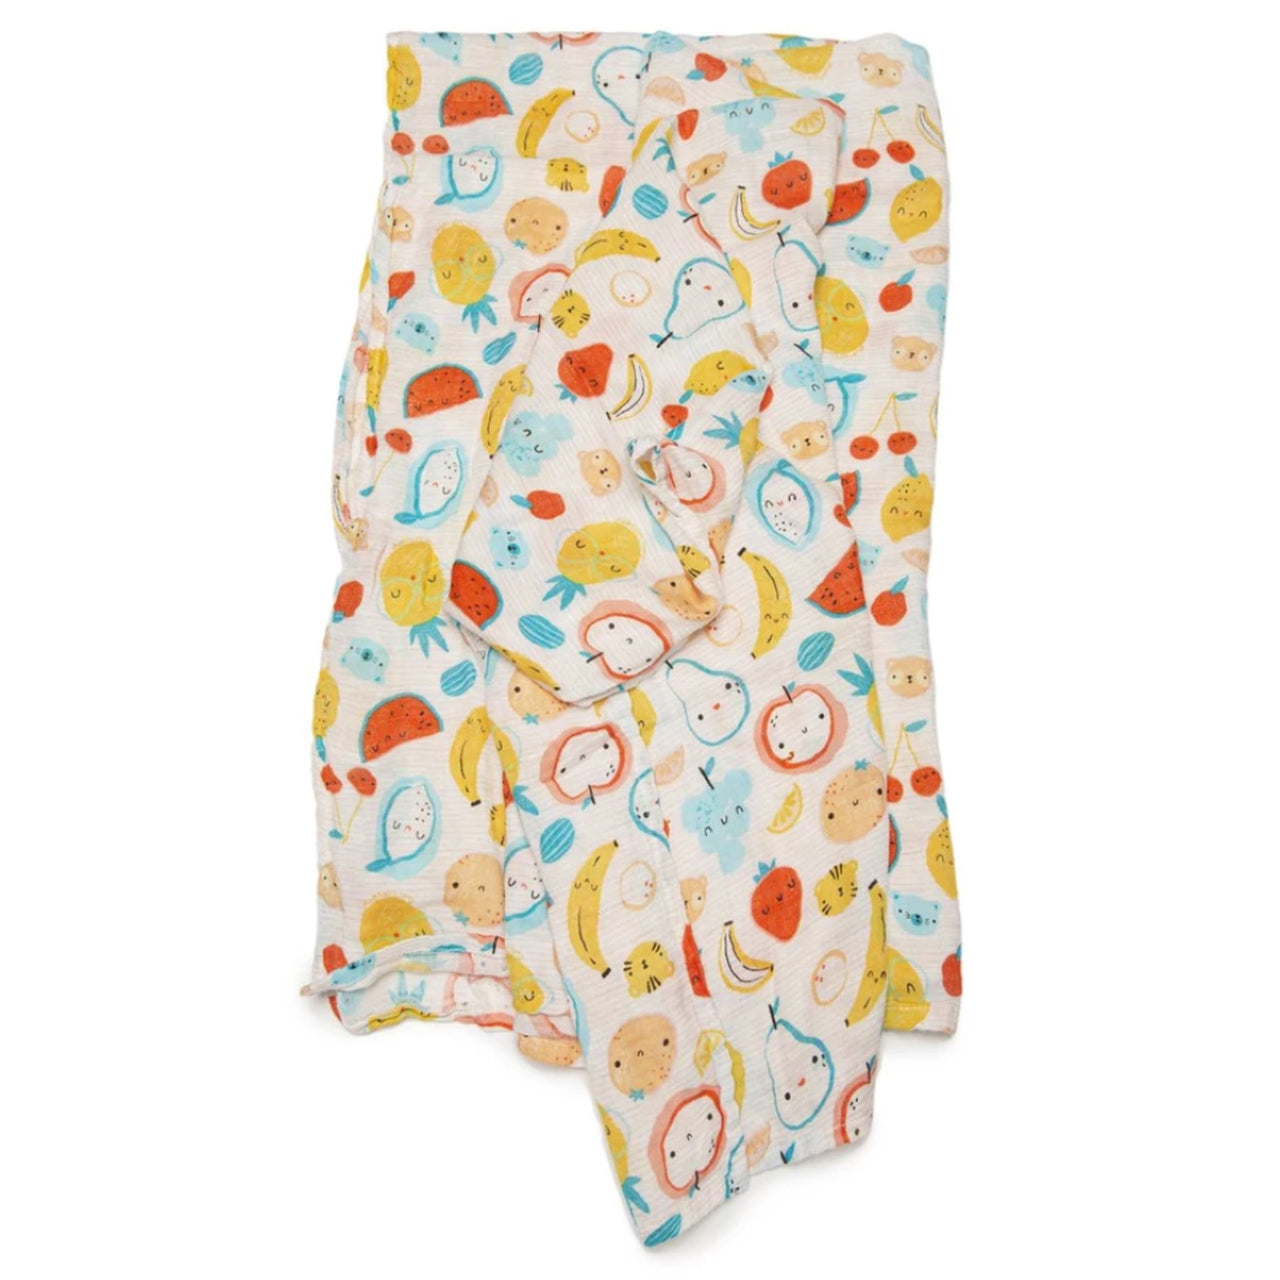 Cutie Fruits Muslin Swaddle Blanket